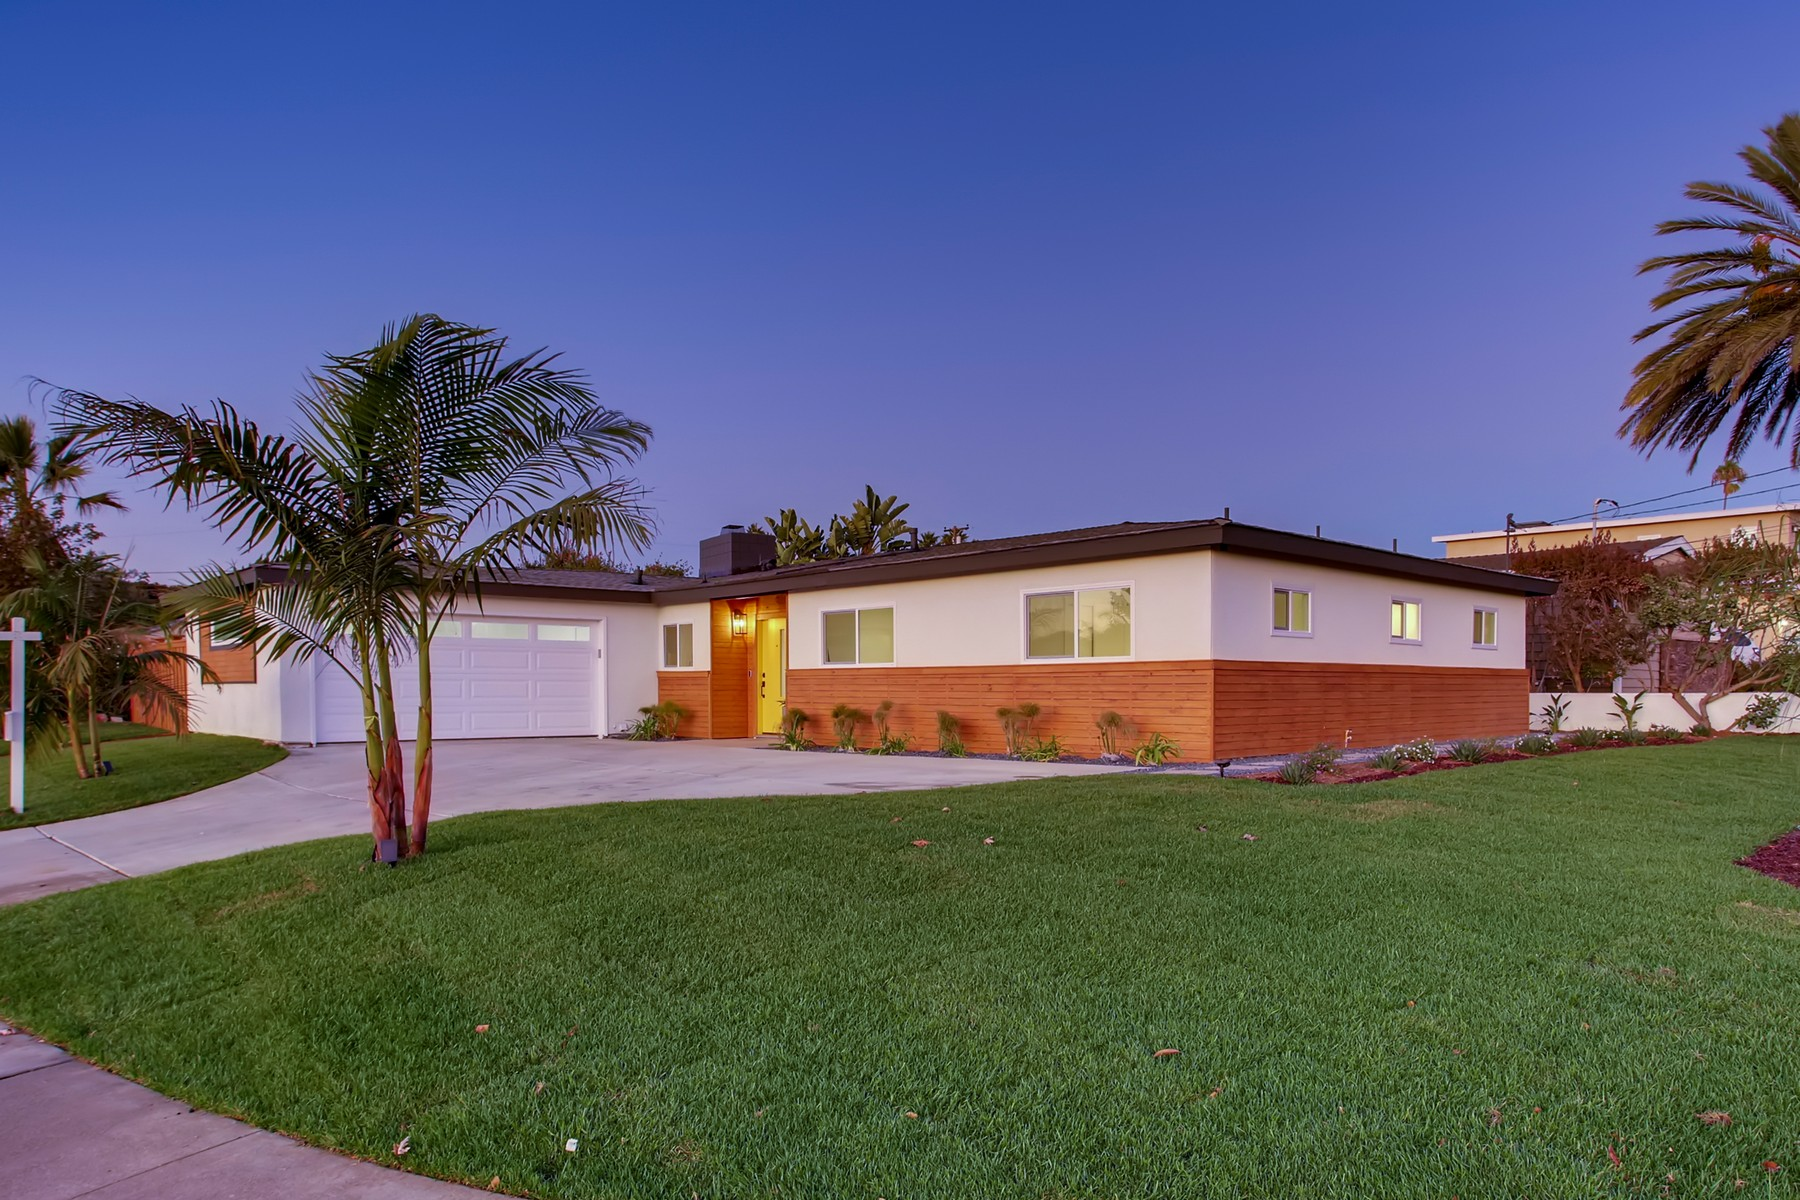 Single Family Homes for Active at 702 Cathy Lane Cardiff, California 92007 United States